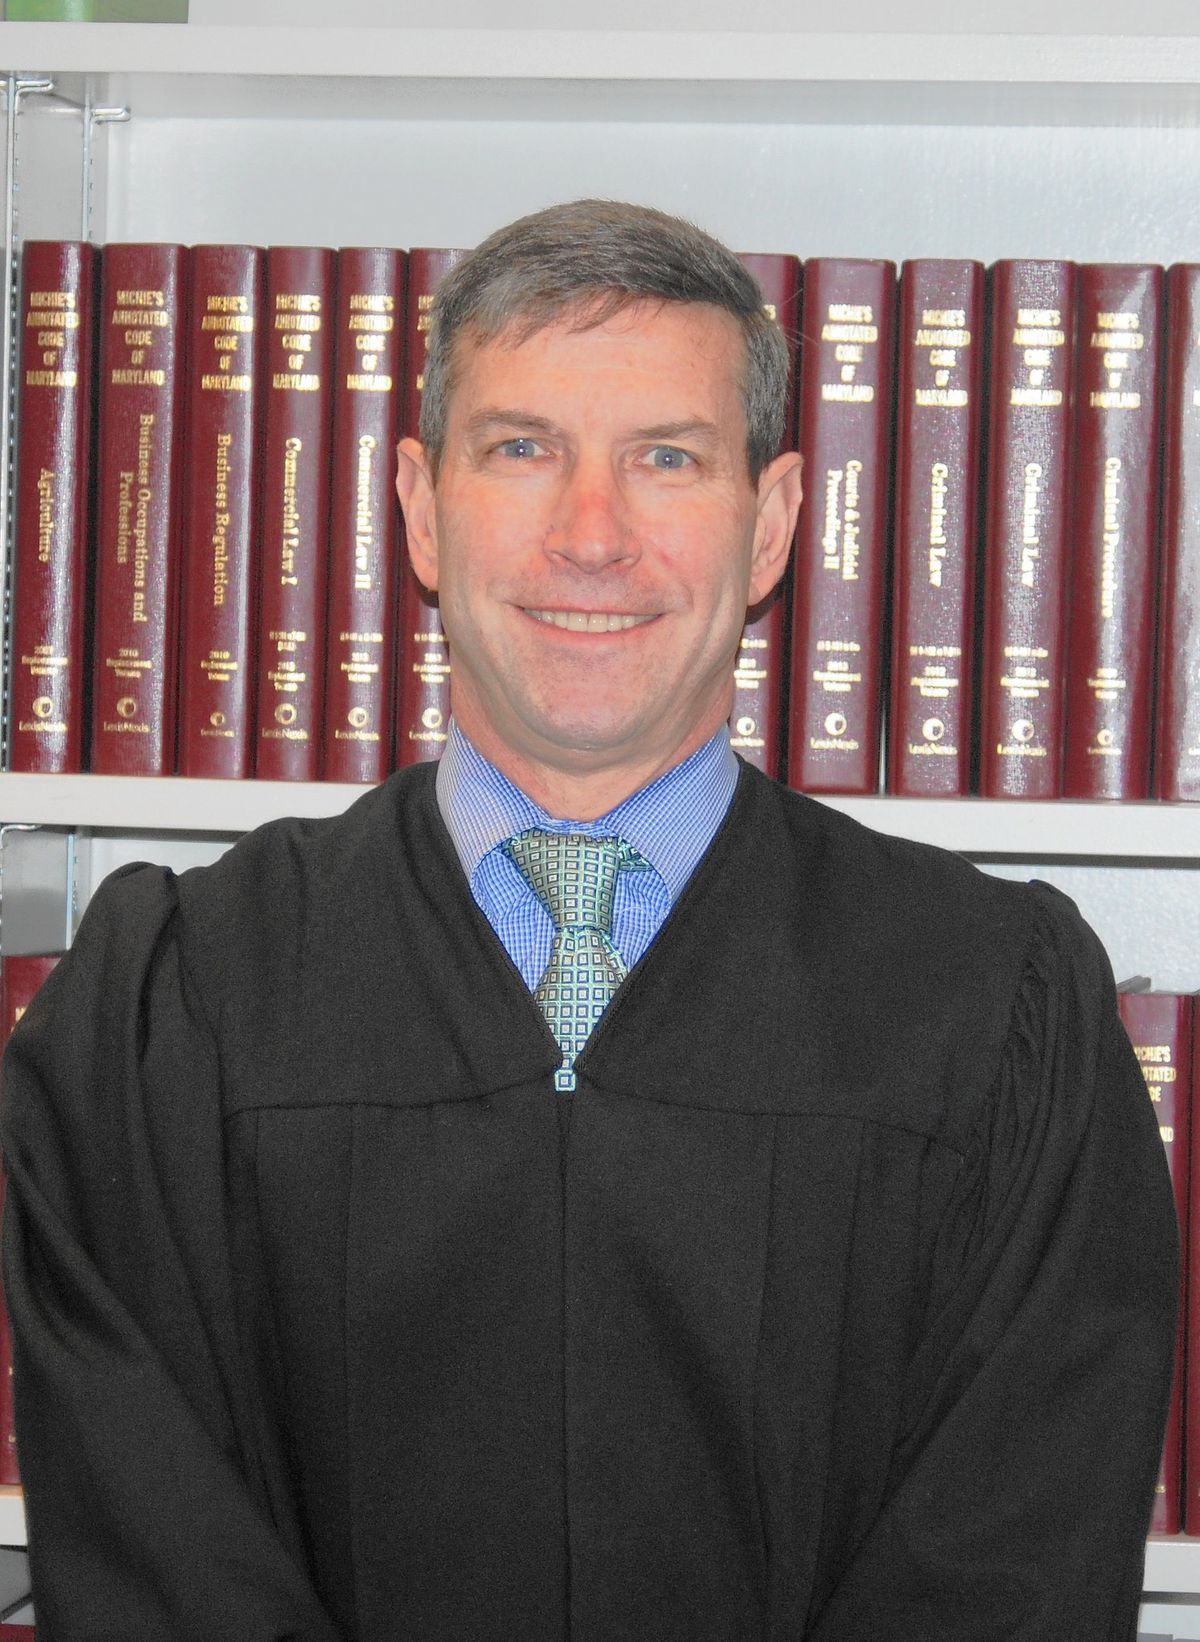 Judge Fred Hecker appointed to oversee drug court - Carroll